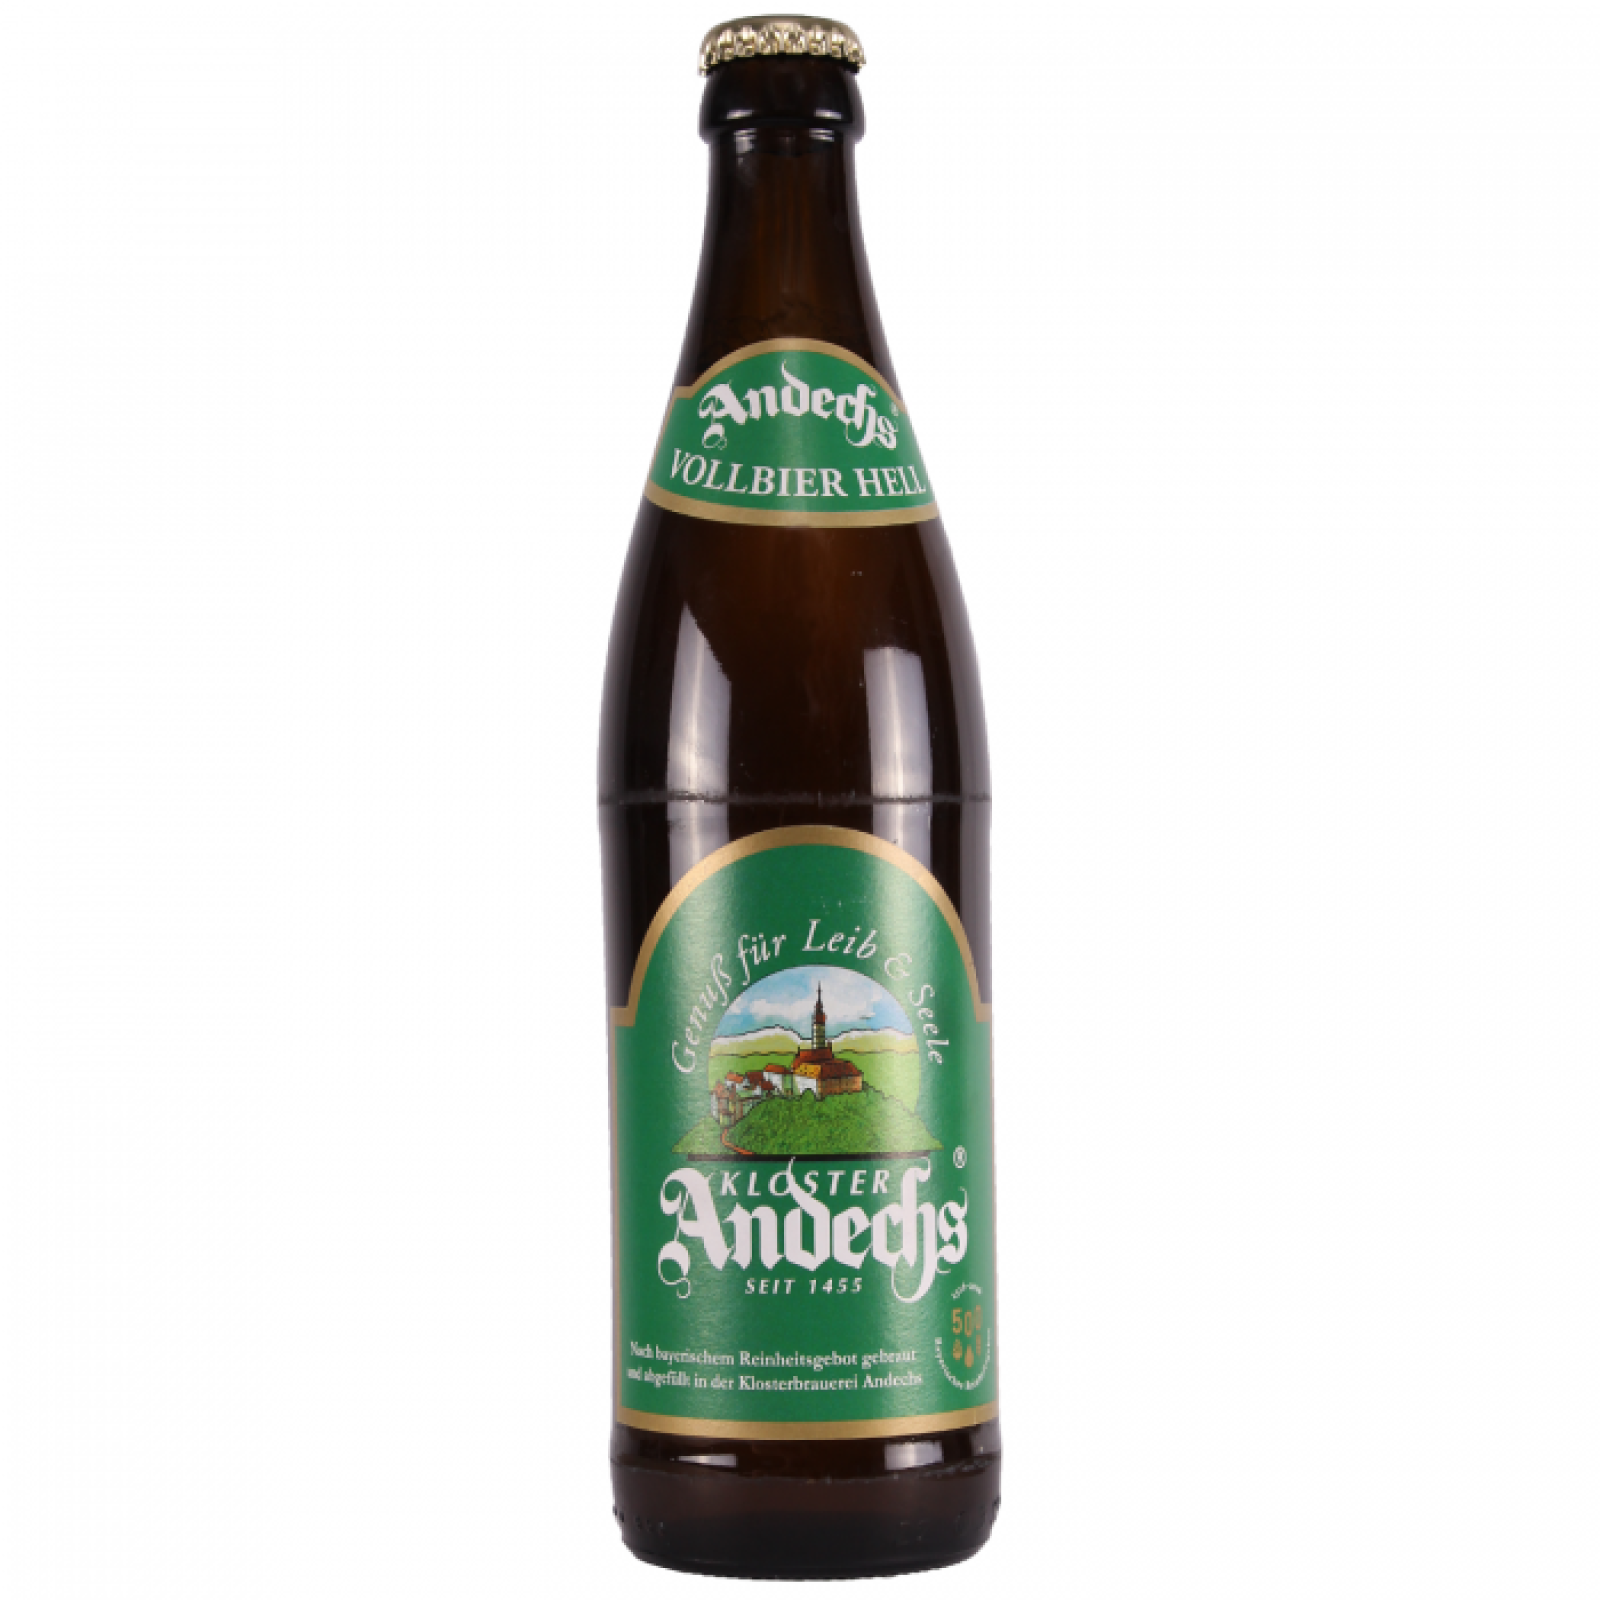 Andechs Vollbier Hell 4.8% 500ml